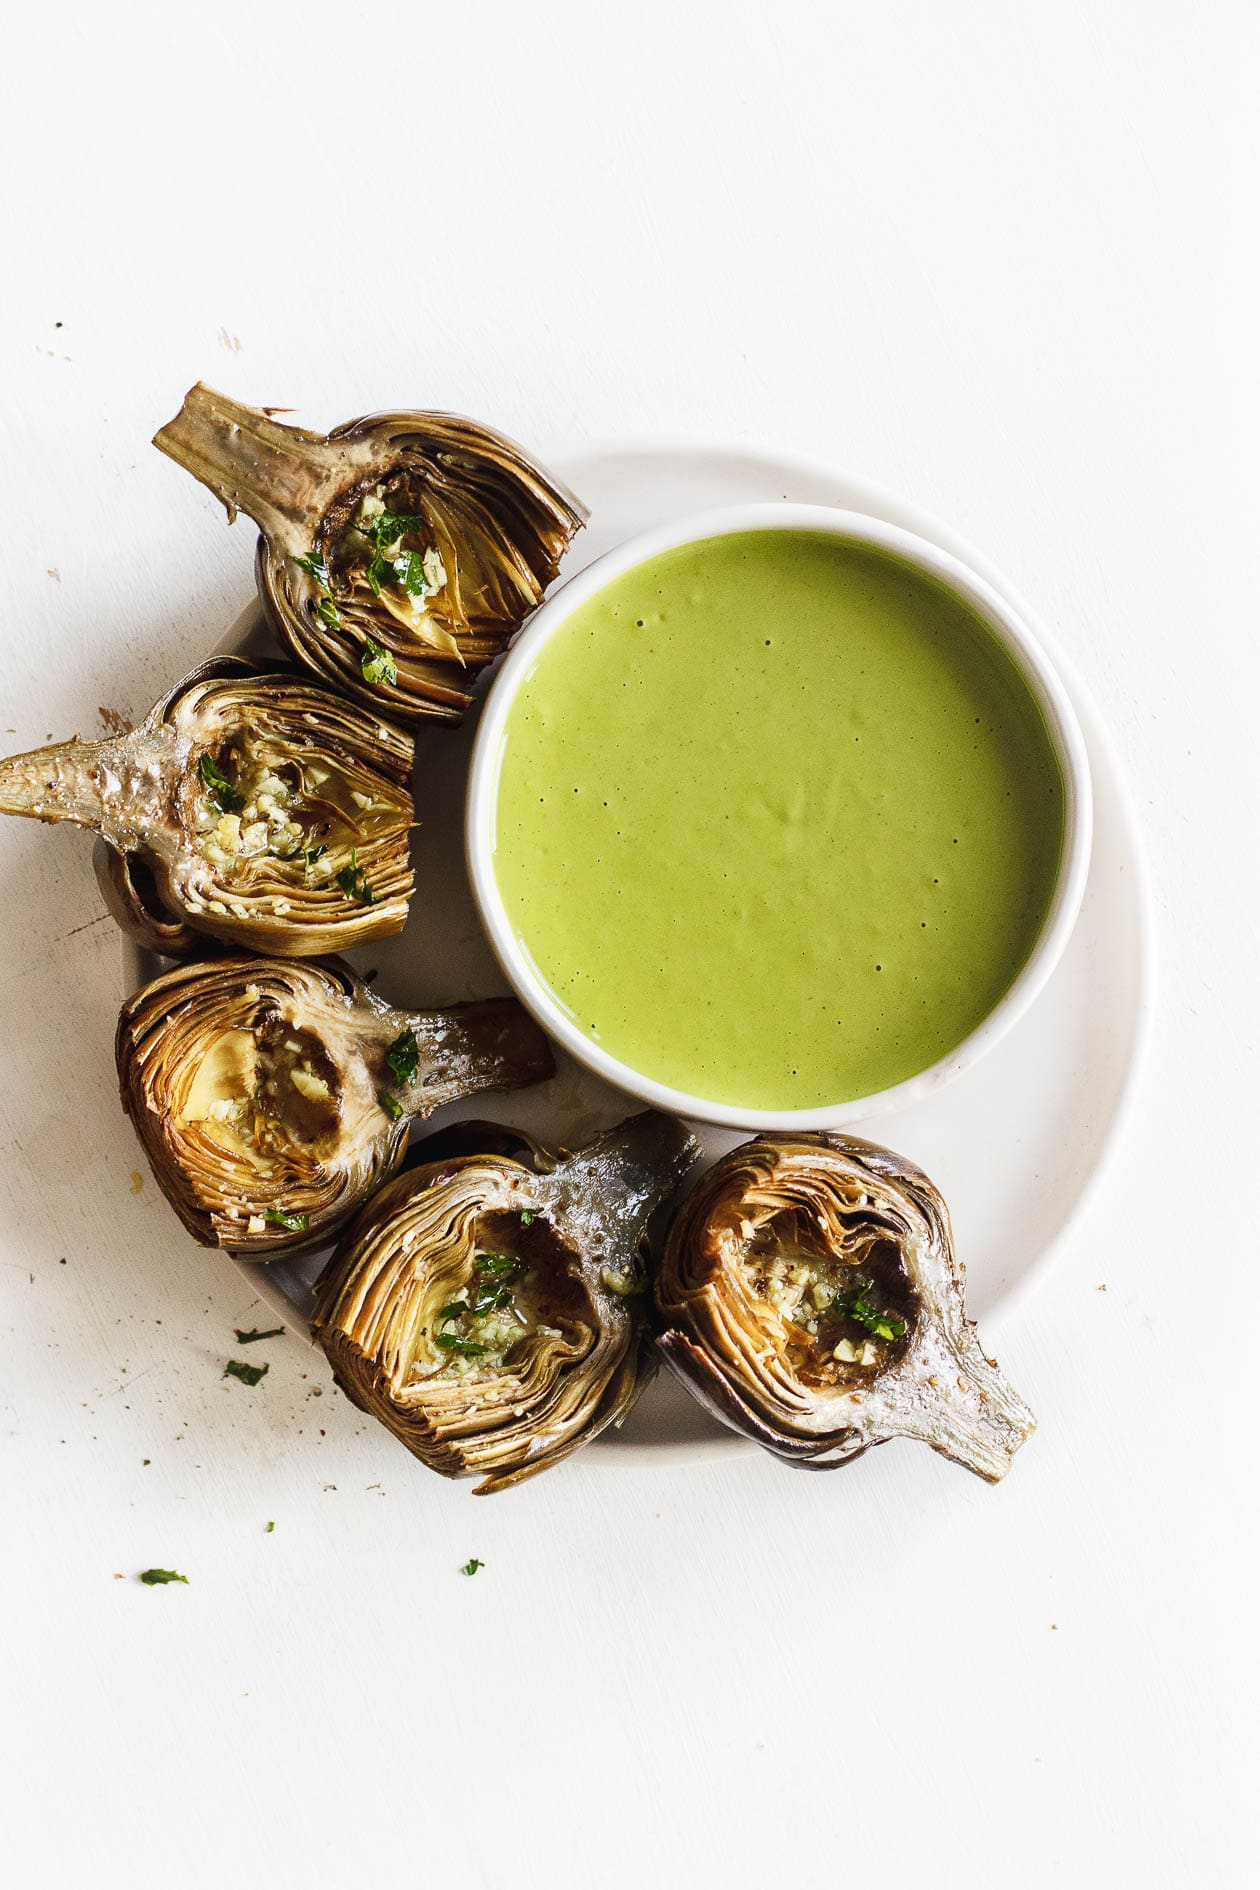 ROASTED ARTICHOKES WITH GREEN GODDESS SAUCE